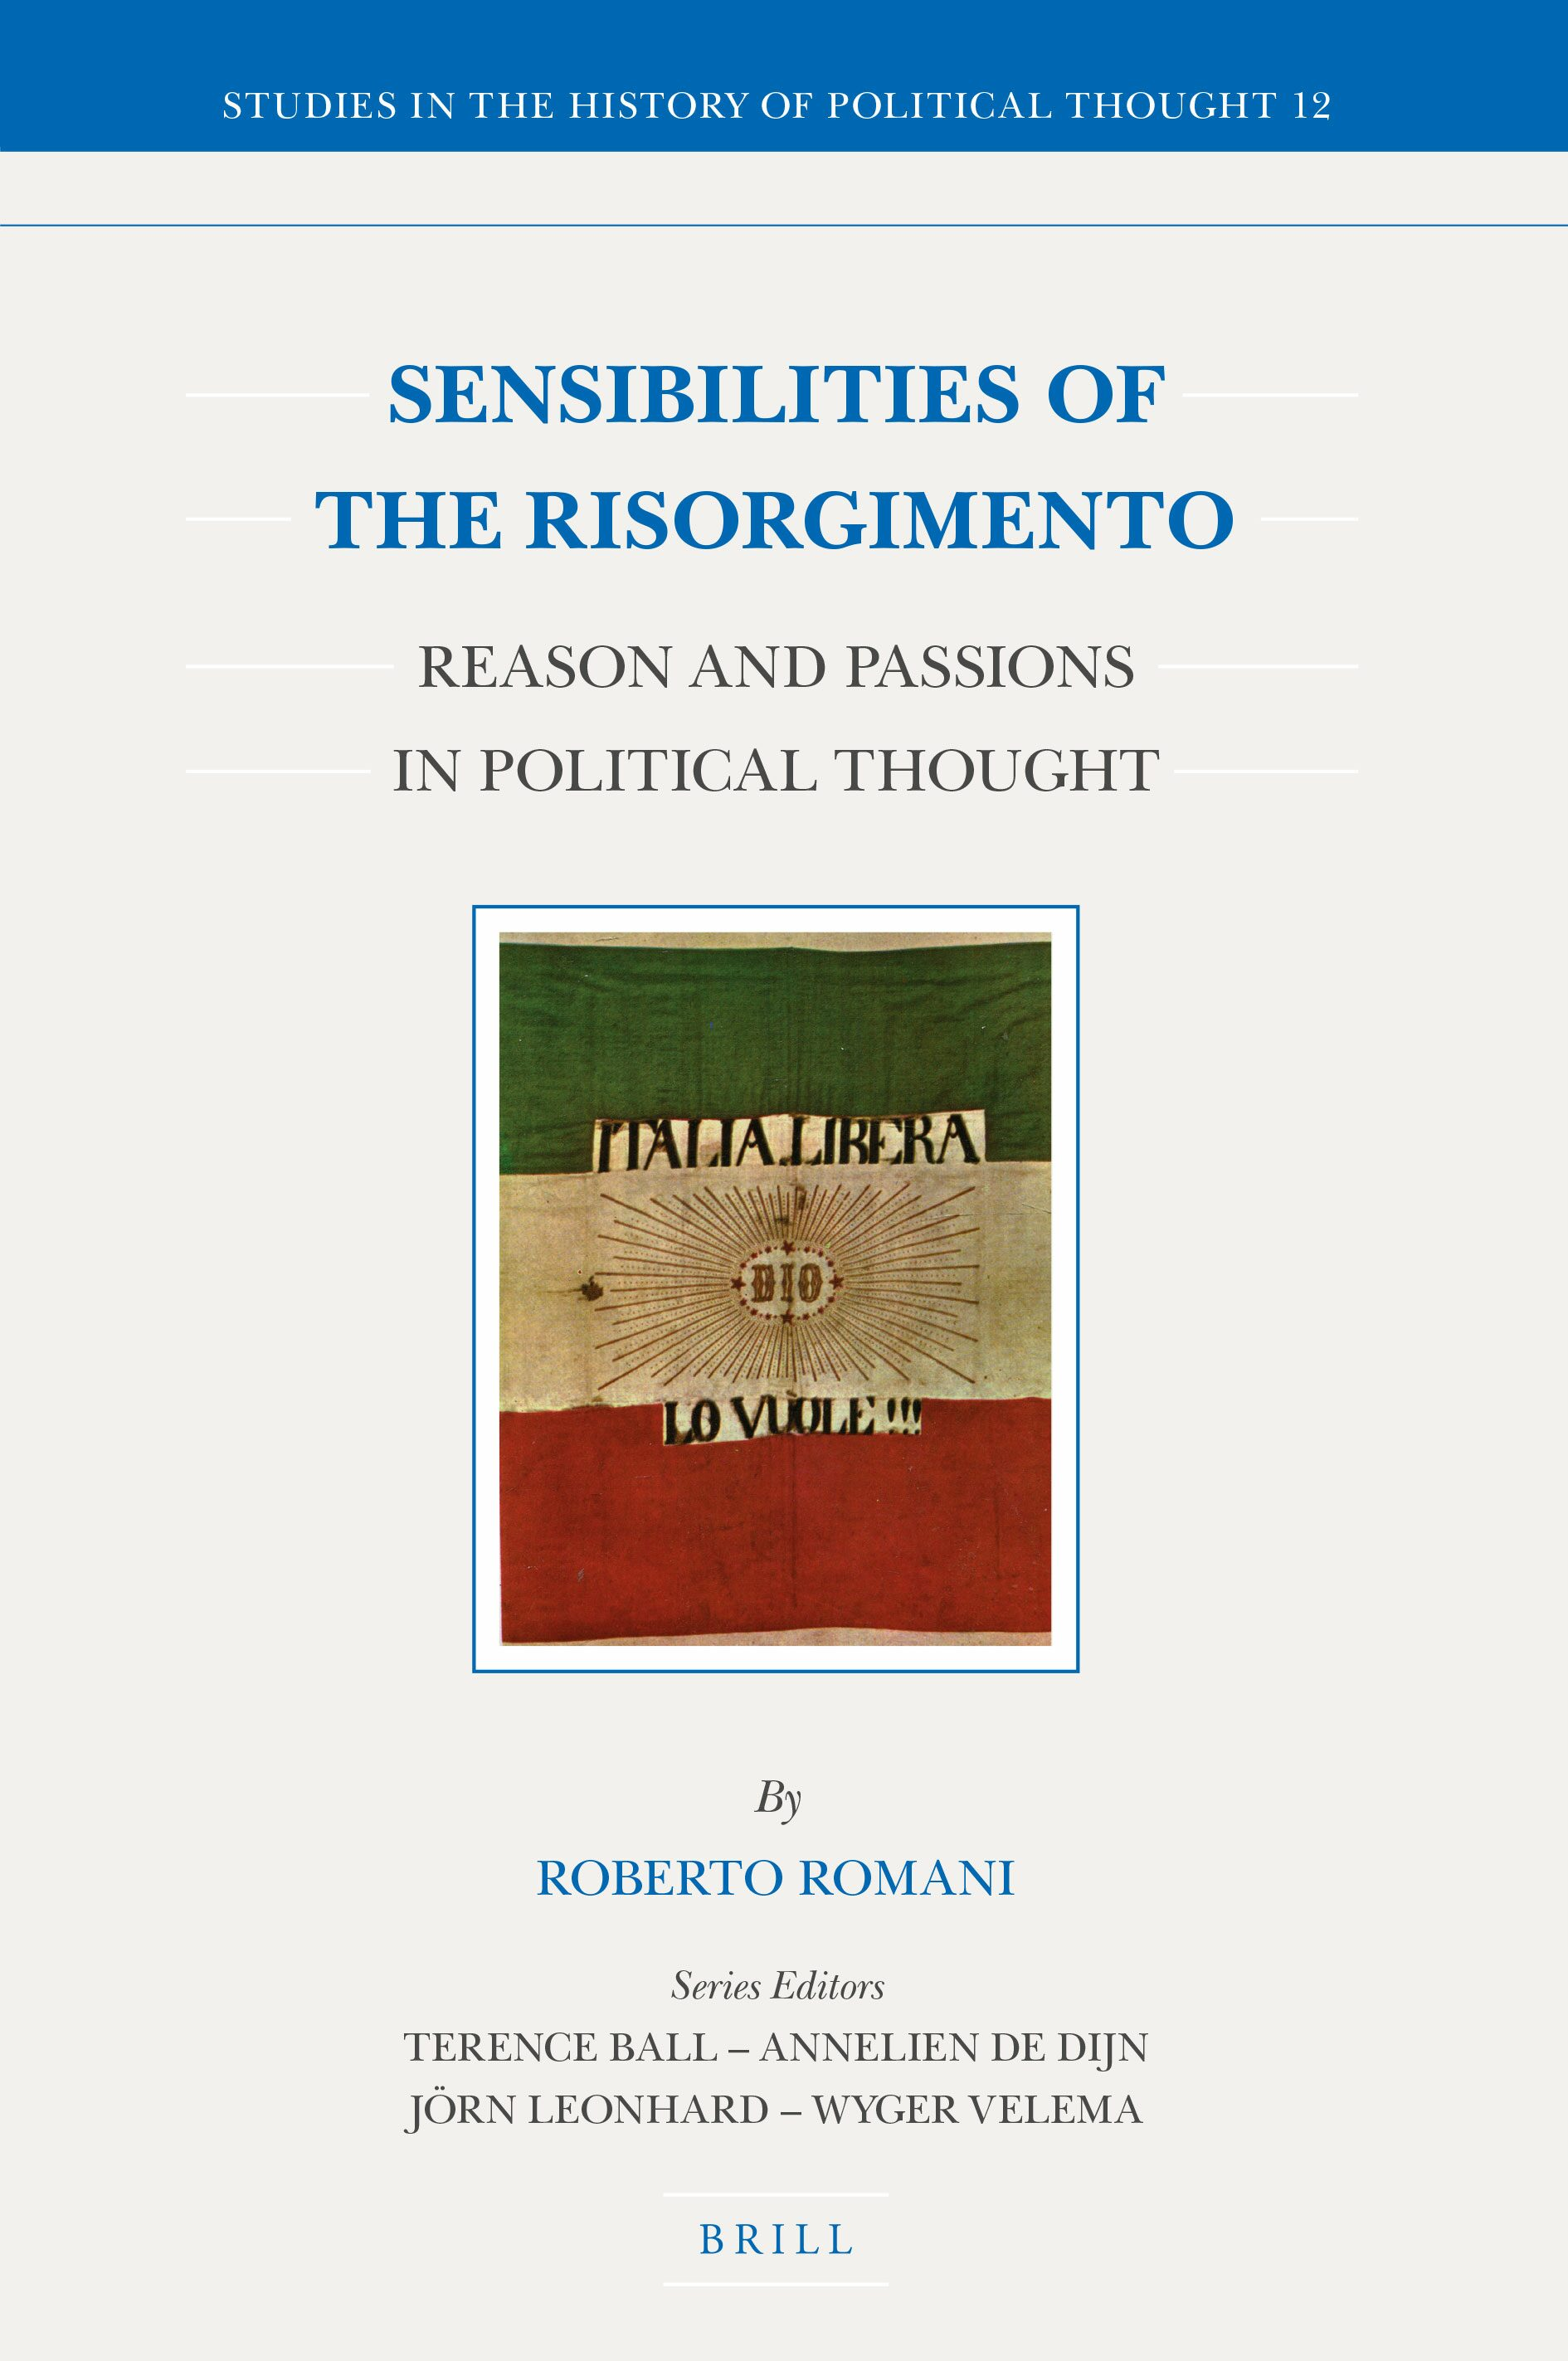 The Reason Of The Elites Constitutional Moderatism In The Kingdom Of Sardinia 1849 1861 In Sensibilities Of The Risorgimento